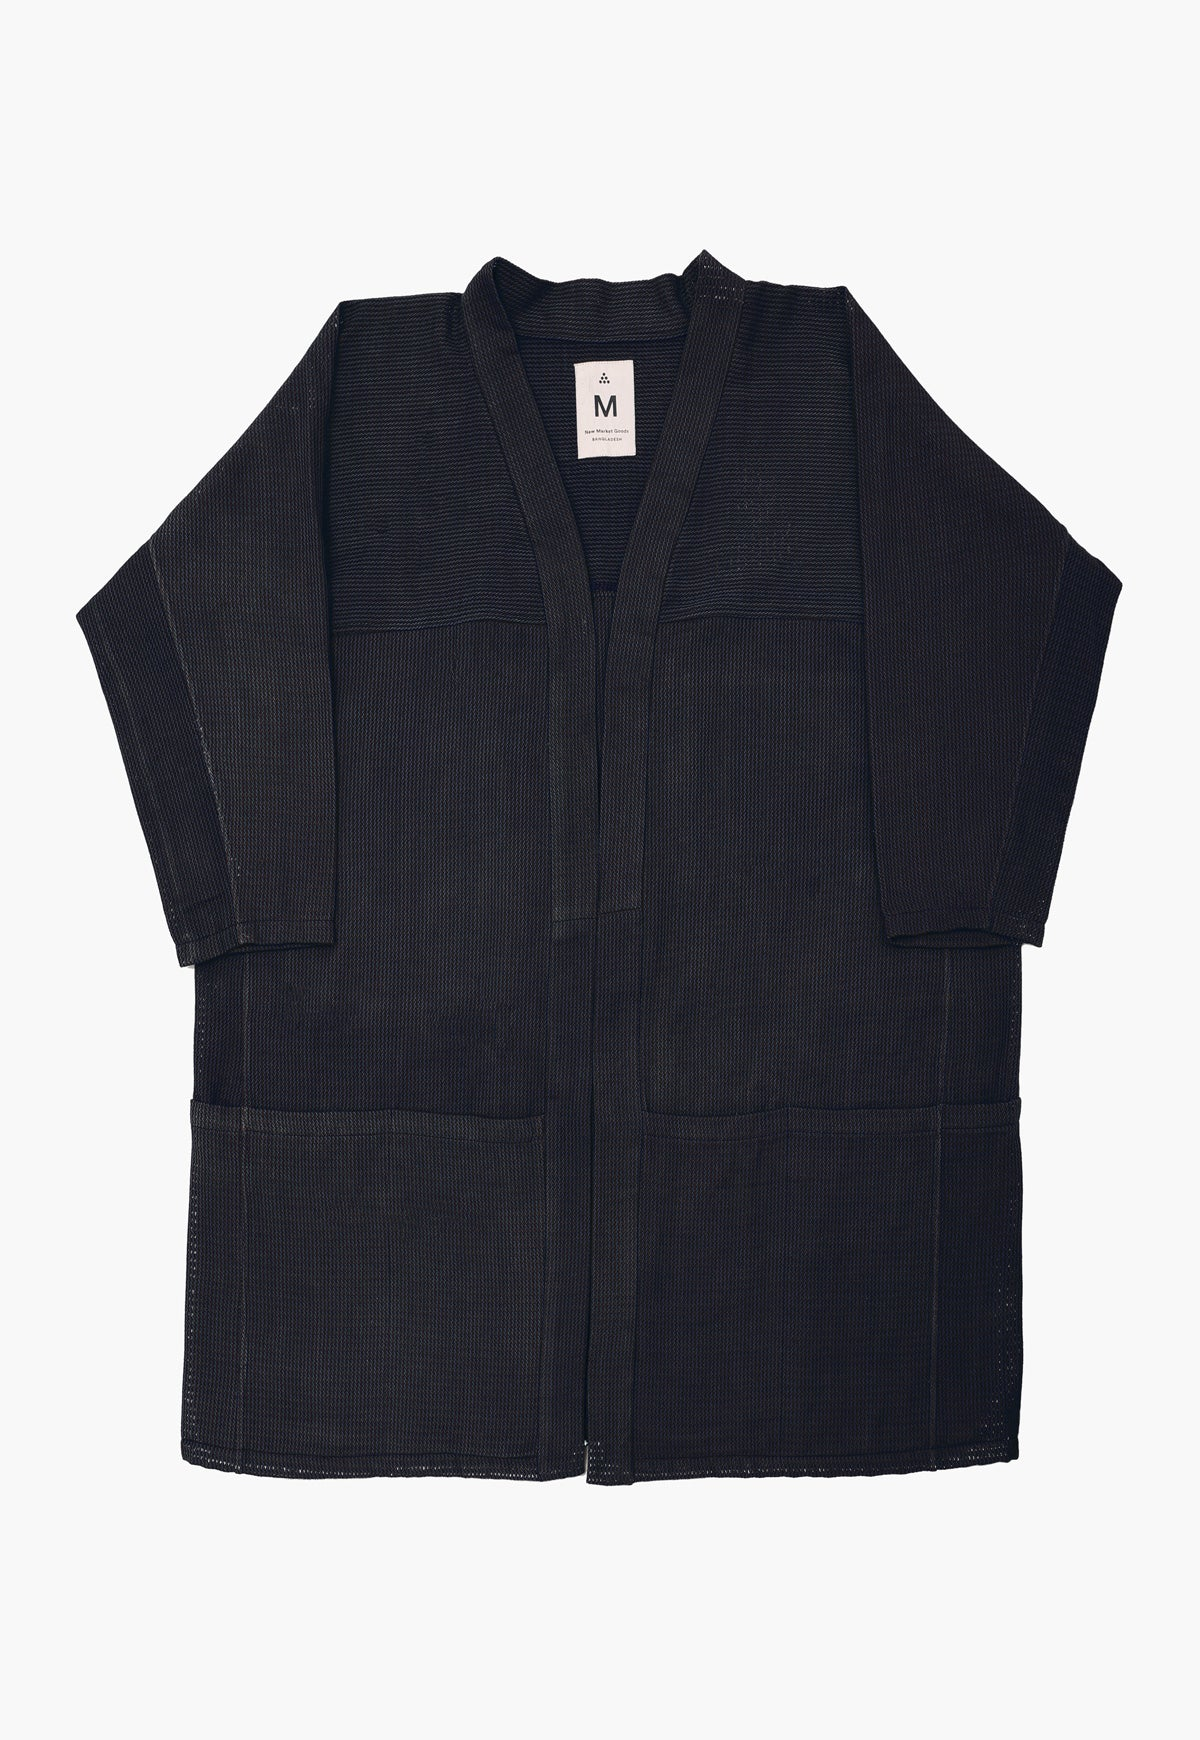 Black Twill Pocket Hanten